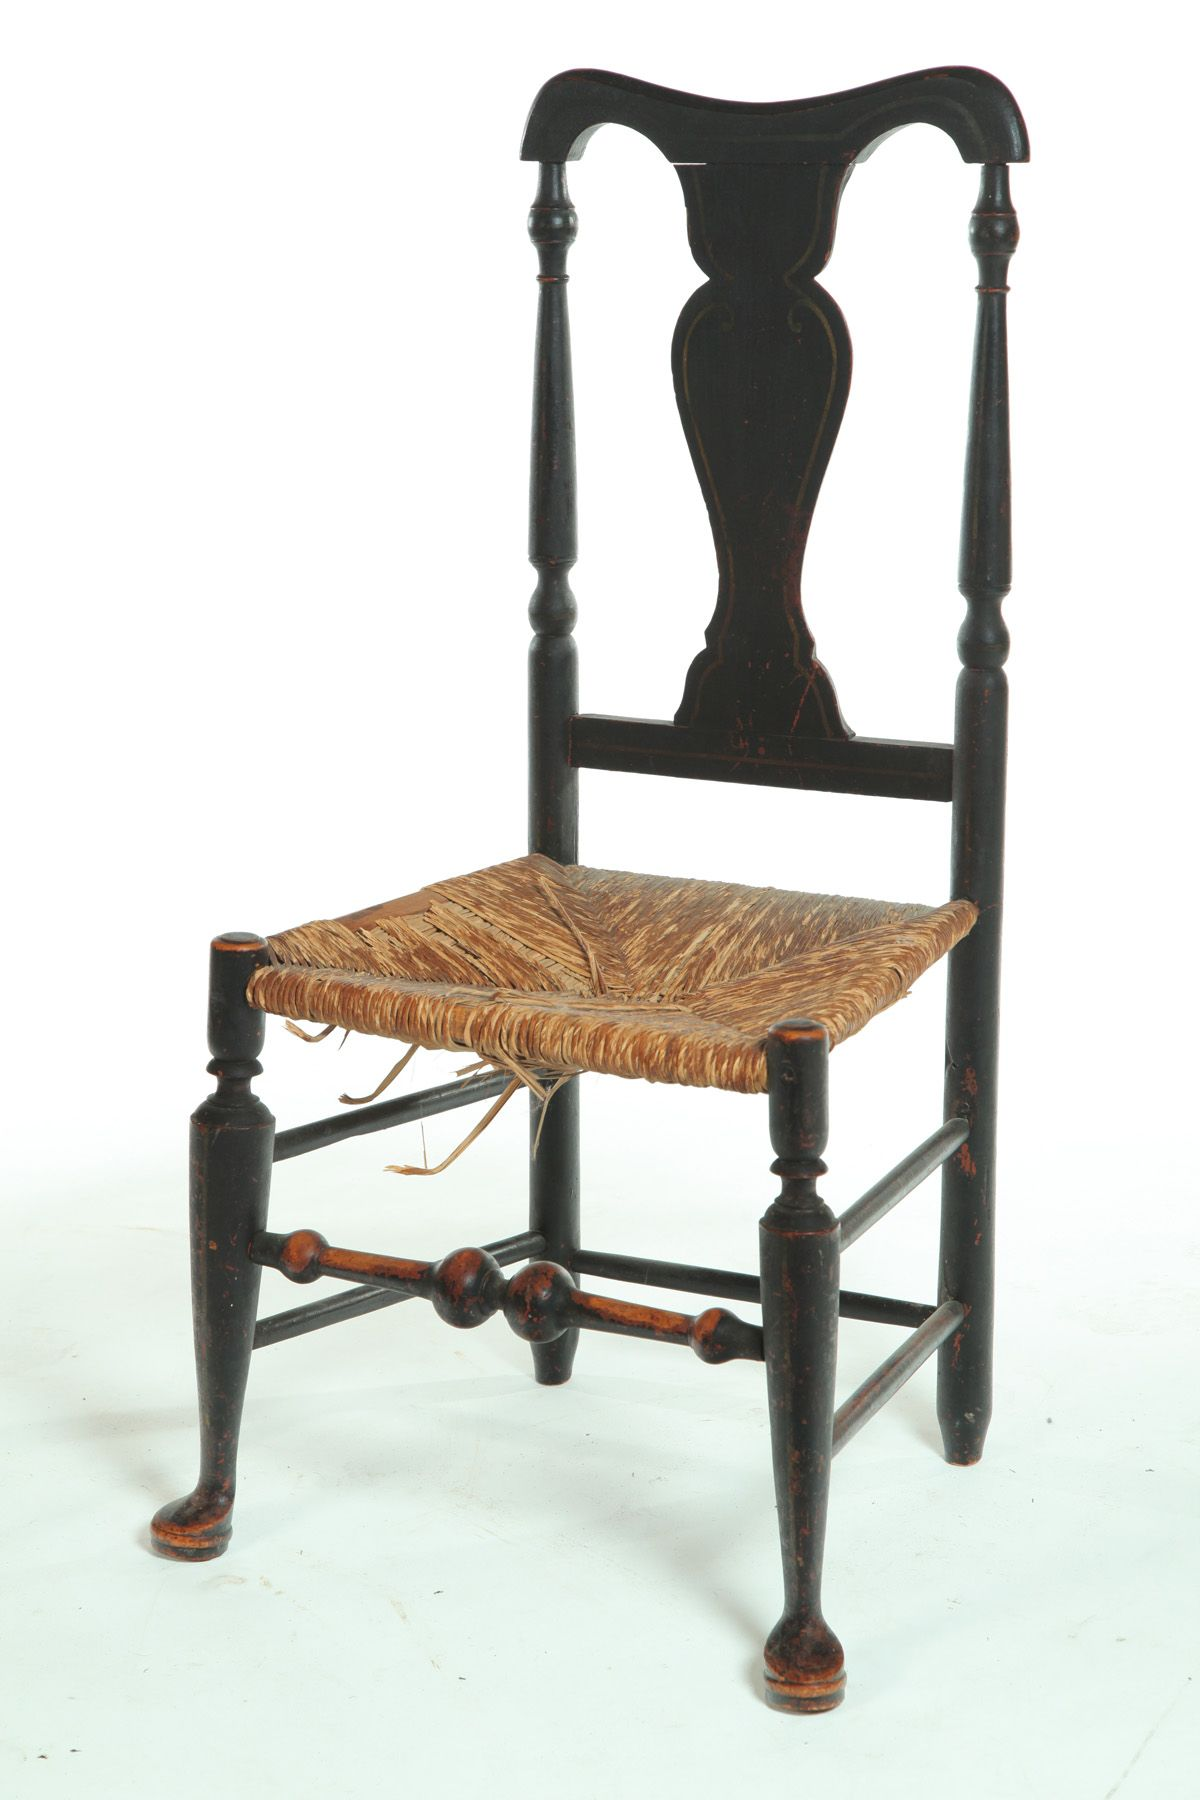 DECORATED QUEEN ANNE CHAIR. New England, 18th century